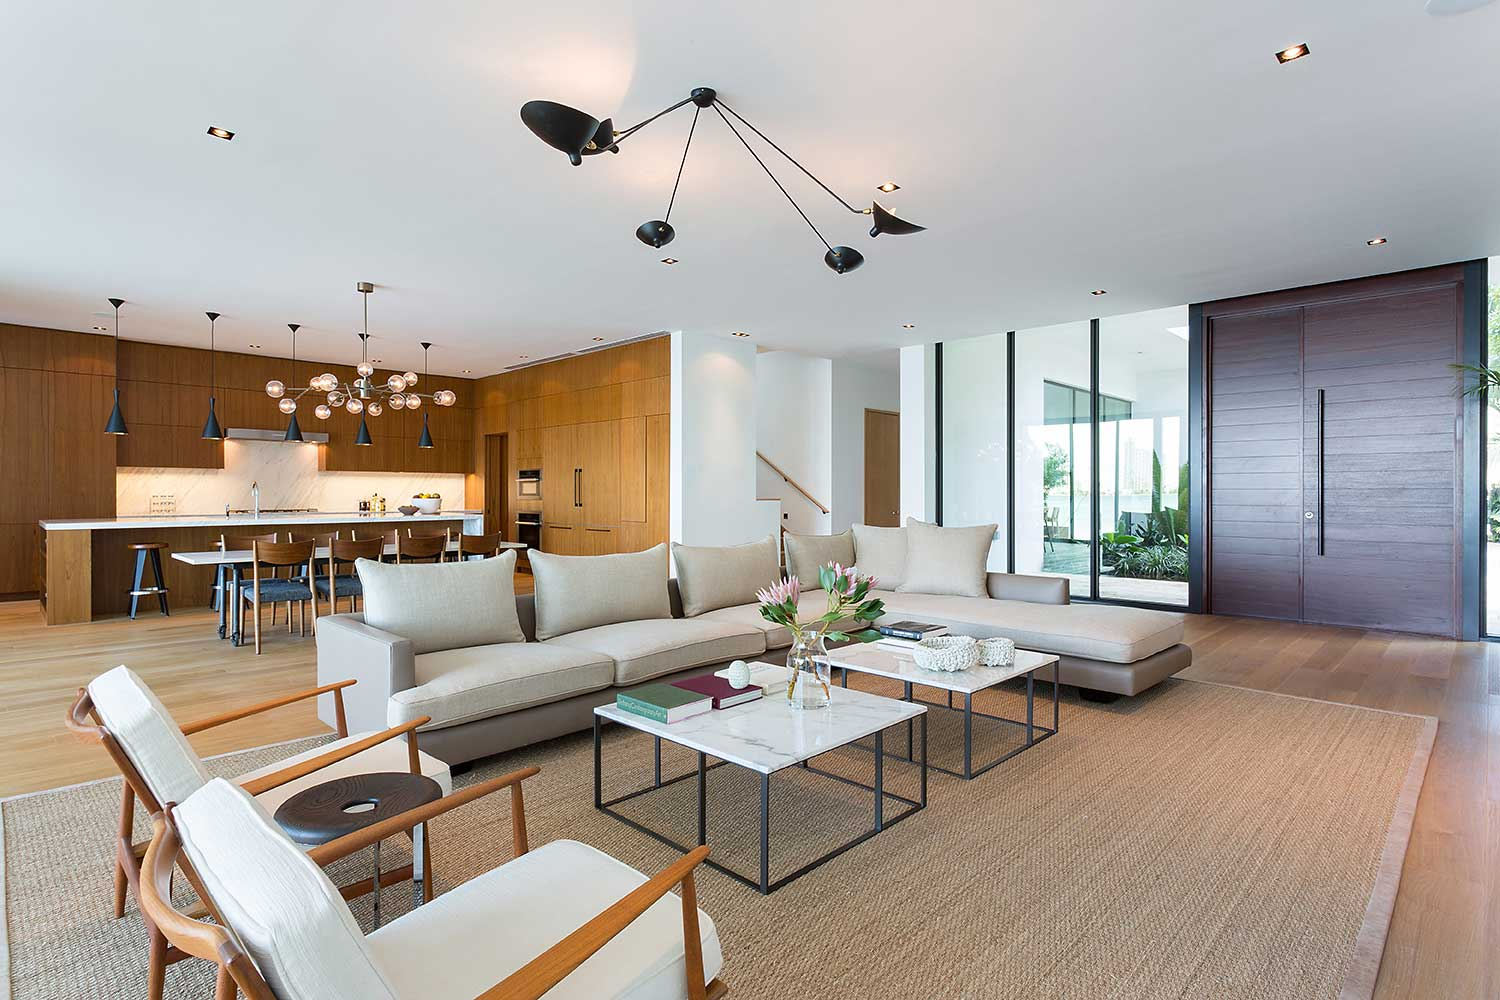 West San Marino Residence by Strang Architecture